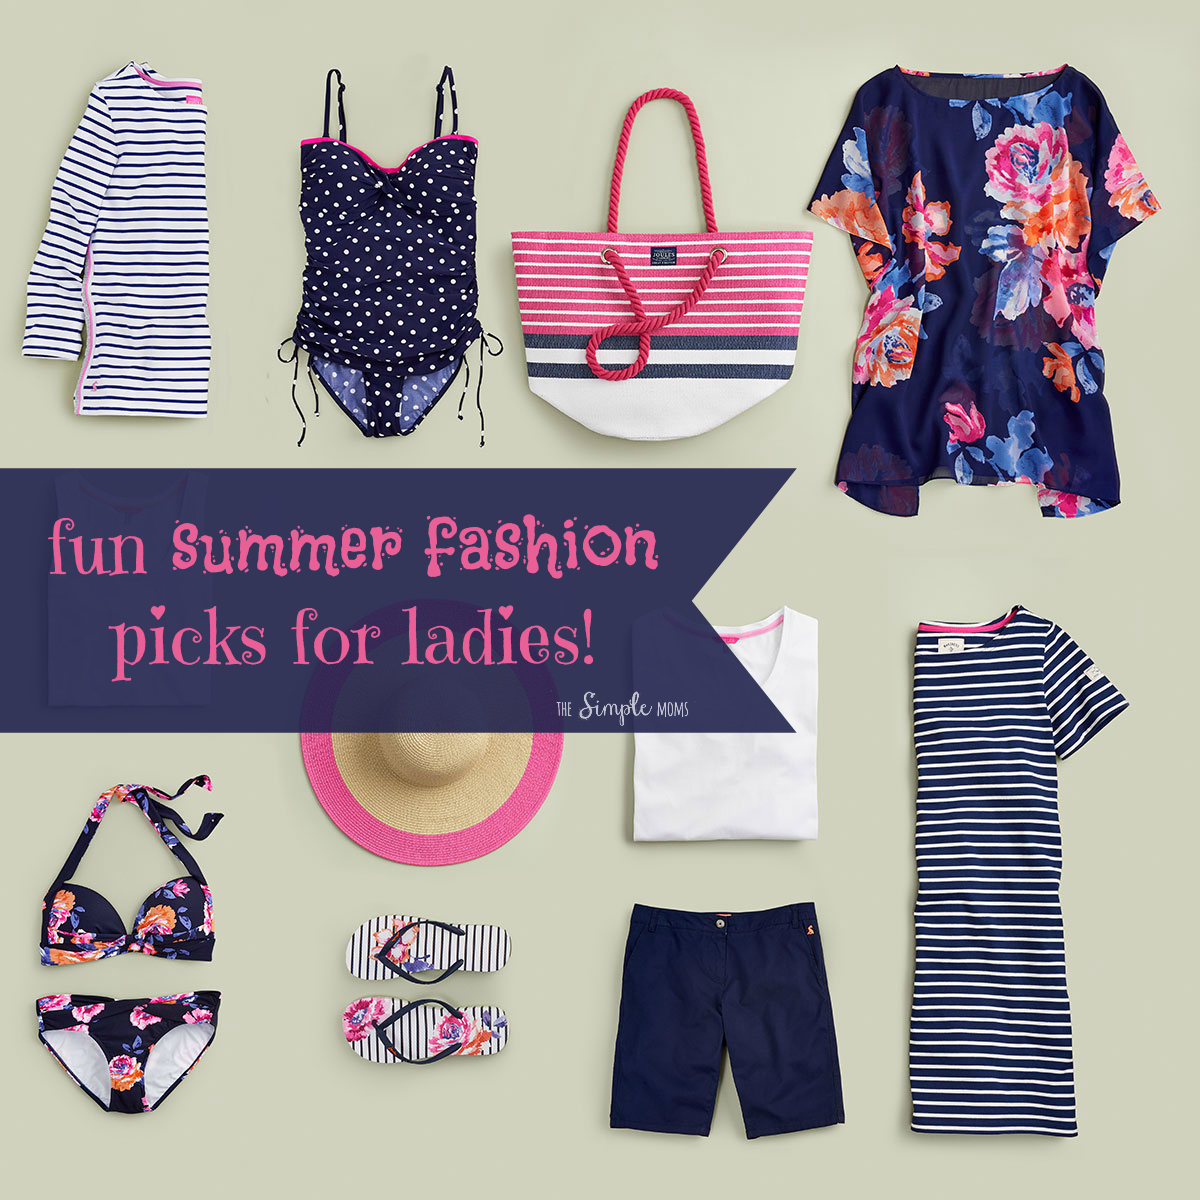 fun summer fashion pics for ladies from joules